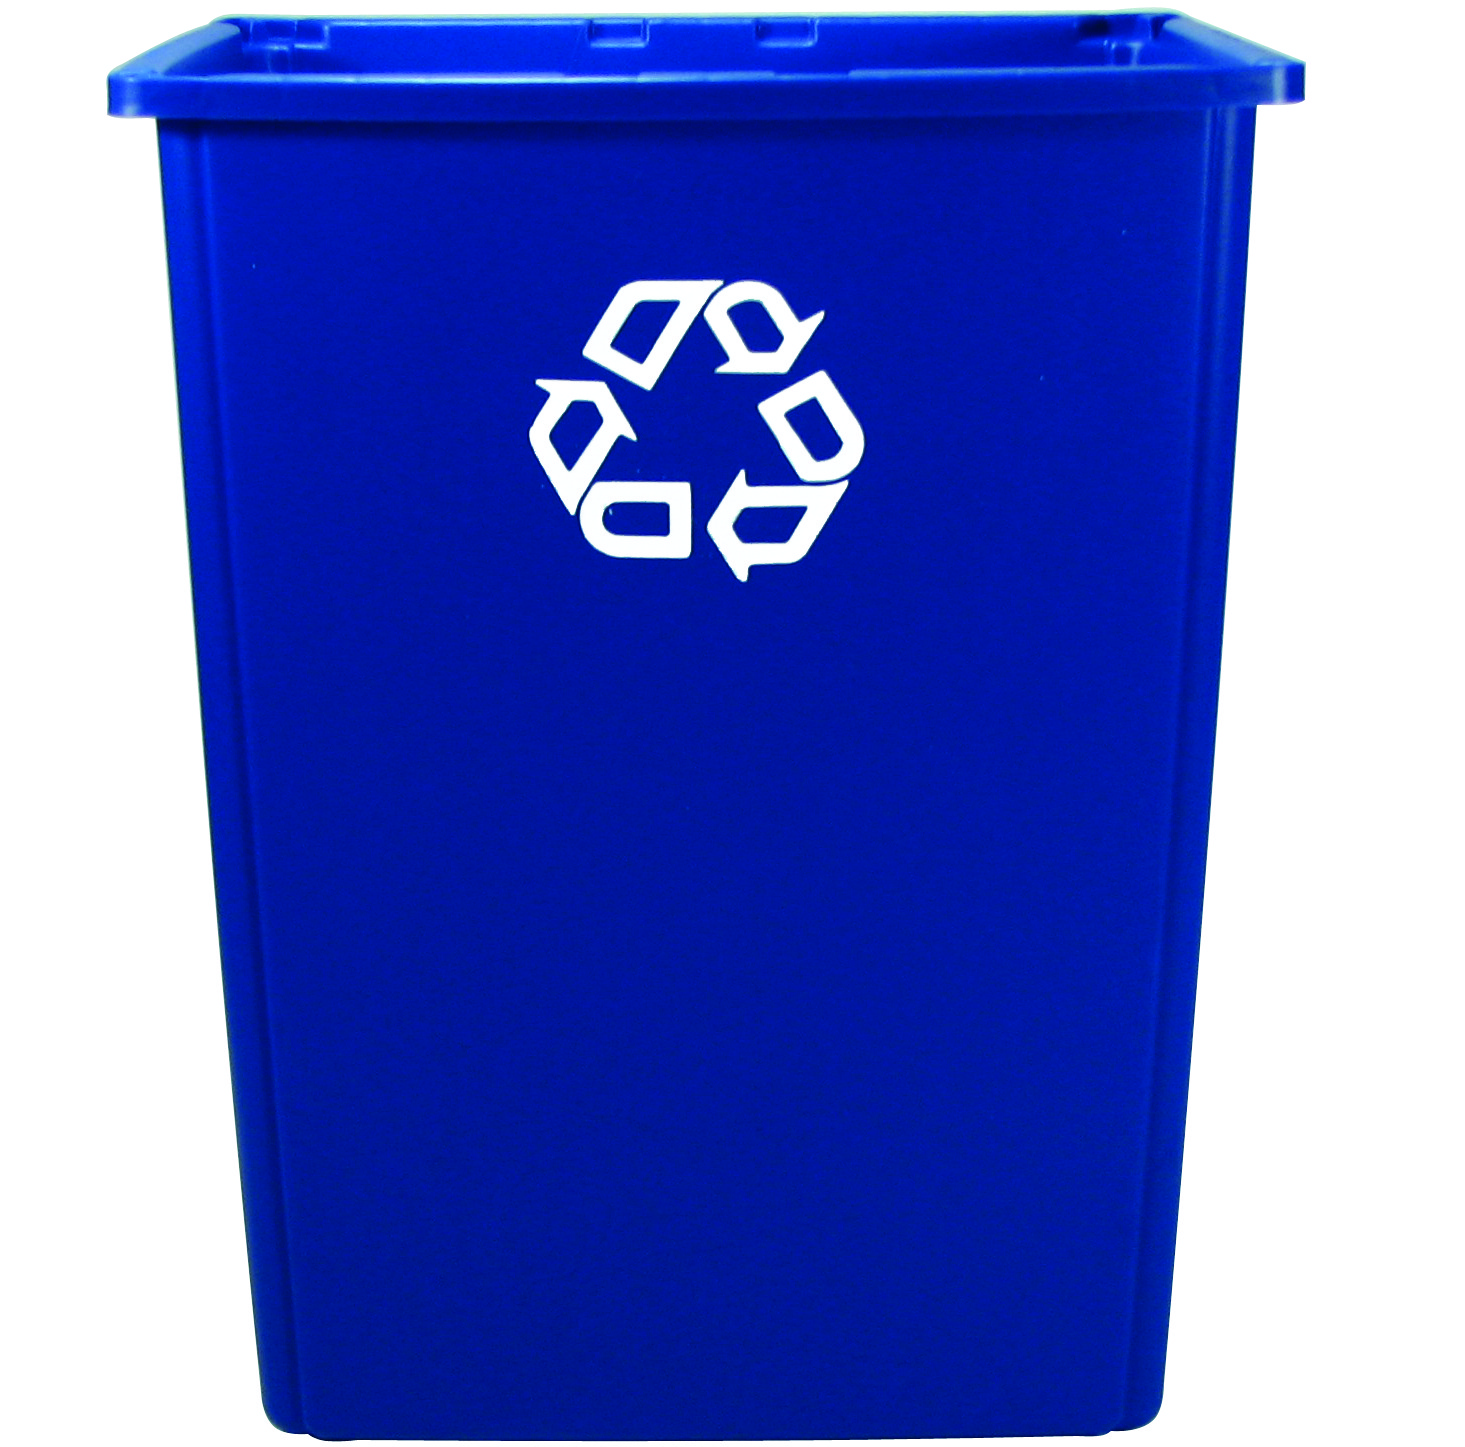 blue rubbermaid glutton recycling container 56 gallons recycle away. Black Bedroom Furniture Sets. Home Design Ideas